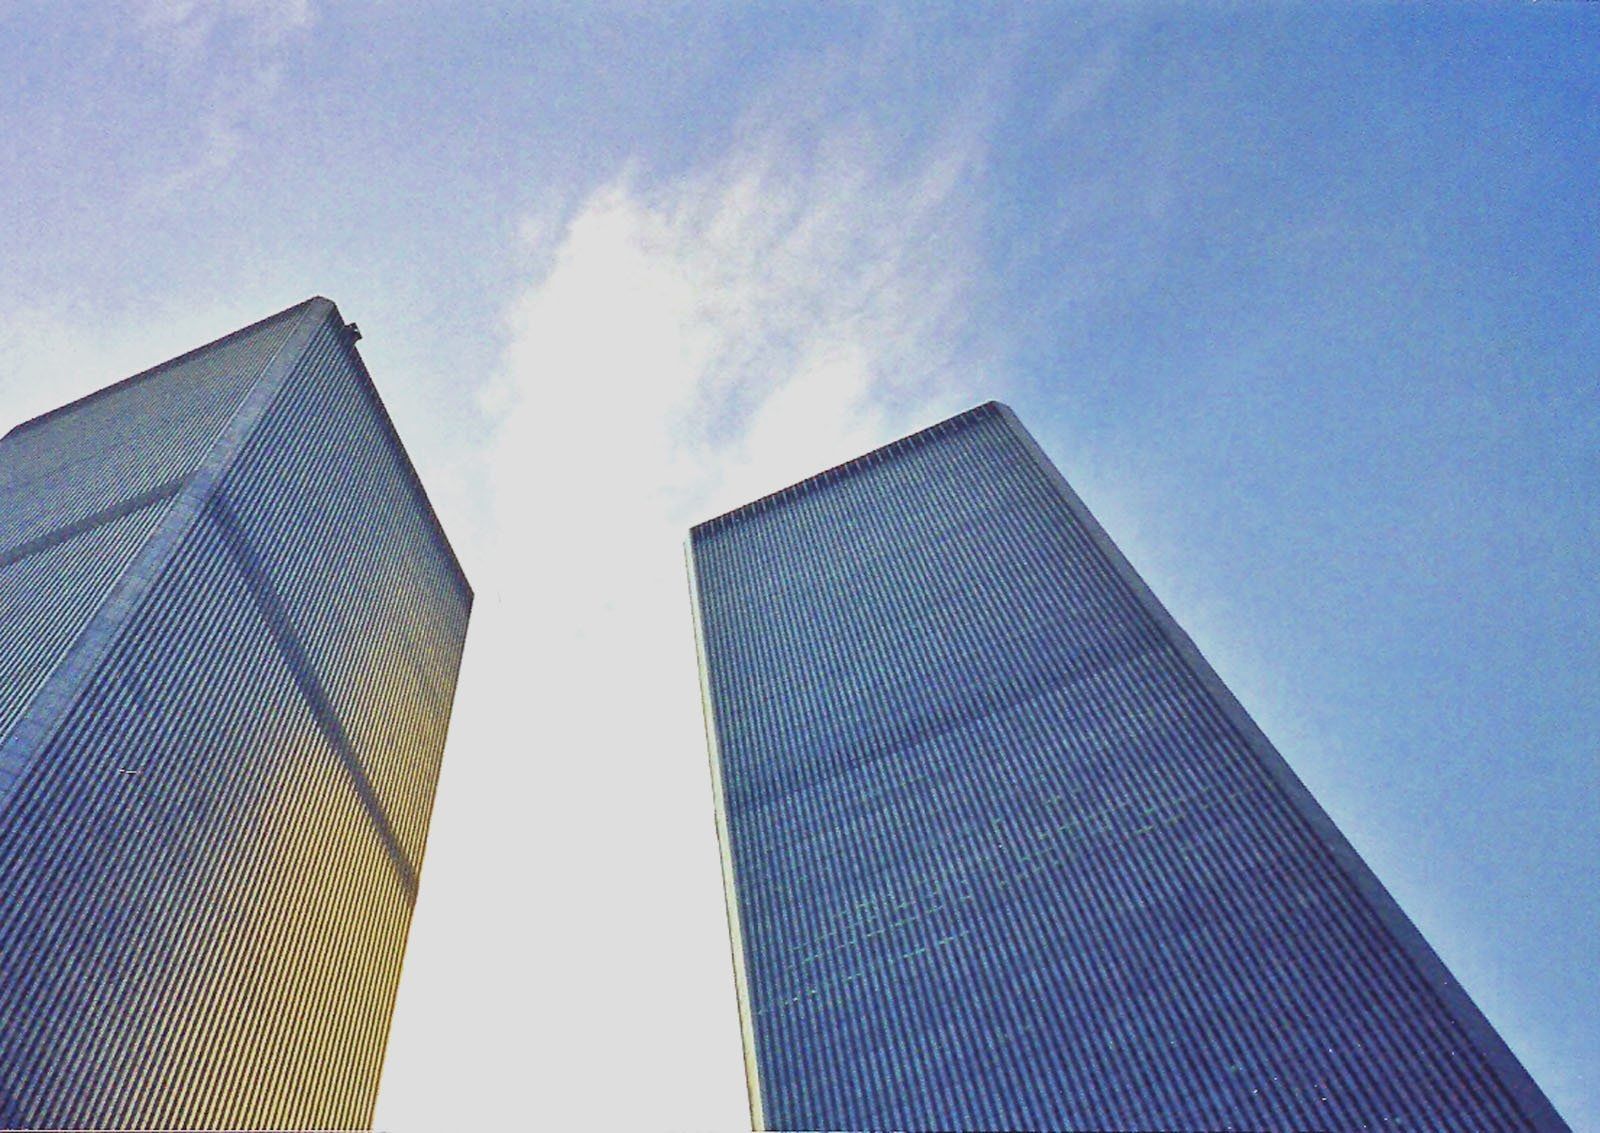 Before the fall: World Trade Center Towers stood for peace